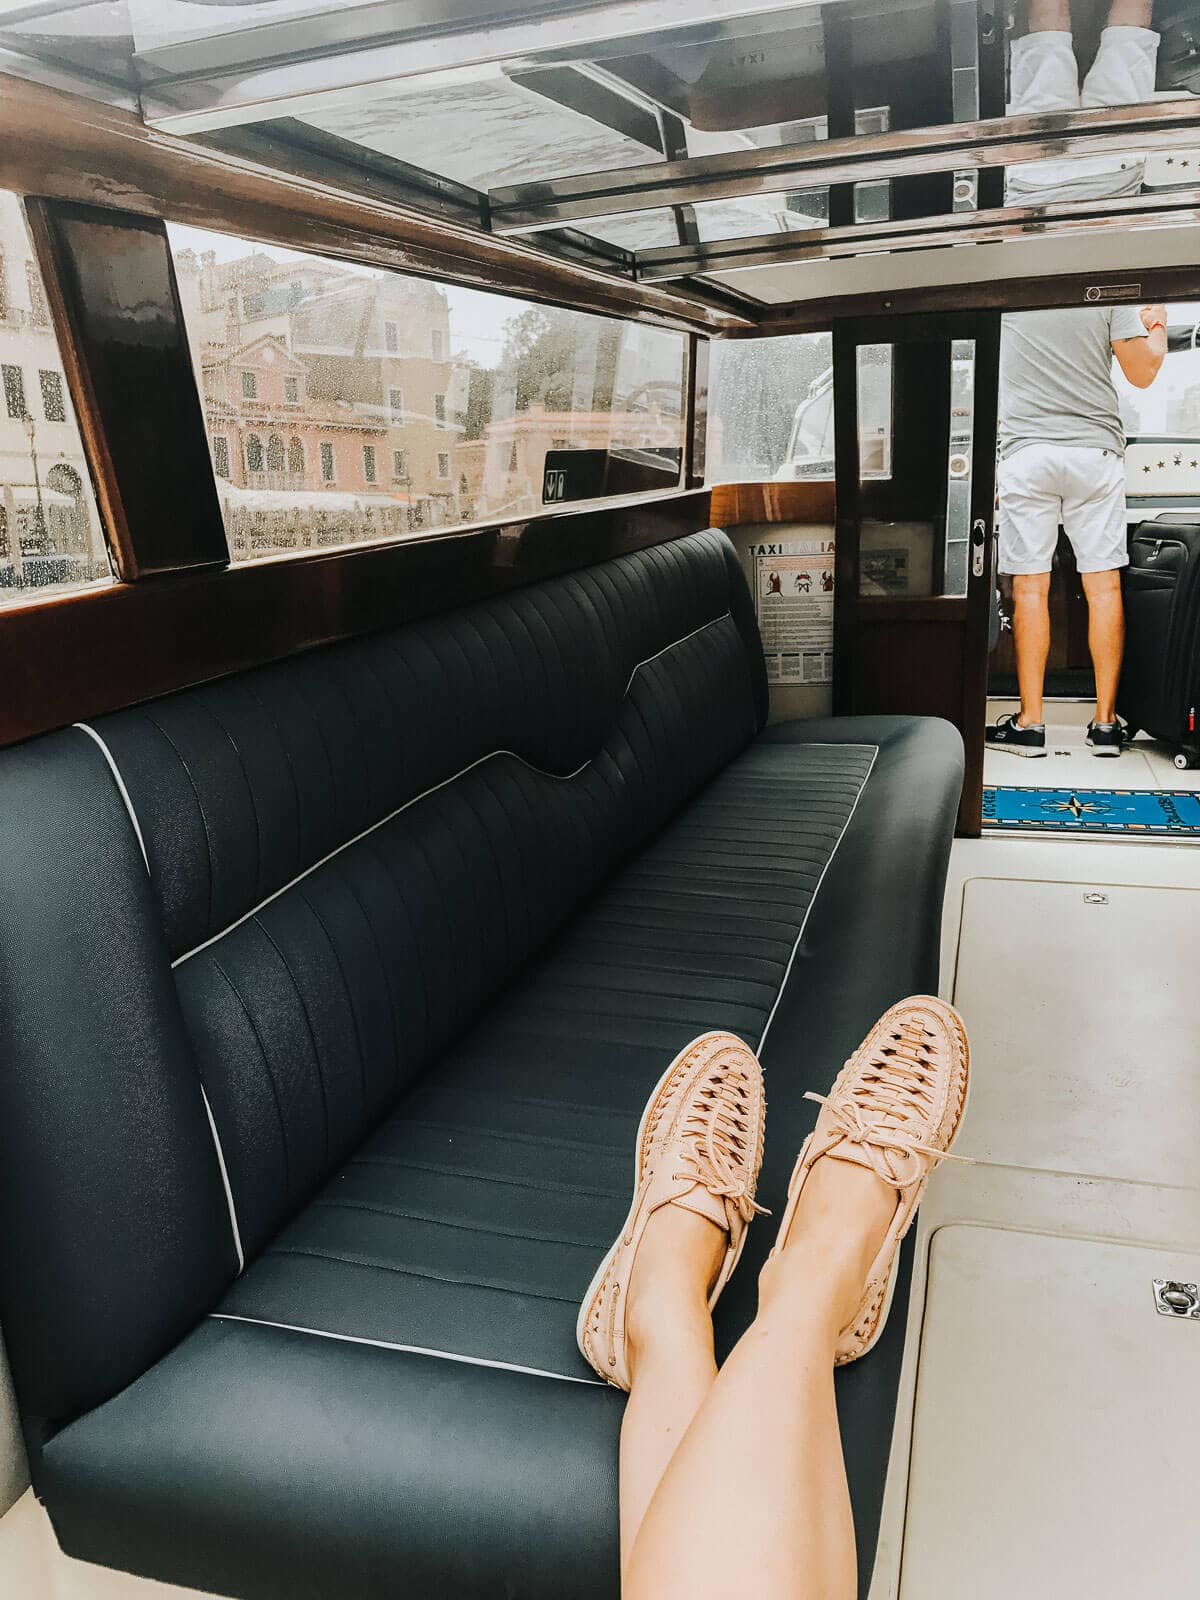 Traveling and planning on doing a lot of walking and sightseeing? Make sure you pack a pair of Sperry Gold Cup Boat shoes for him and Huaraches for her. Best shoes for traveling that wont give you aching feet or blisters. ohsweetbasil.com